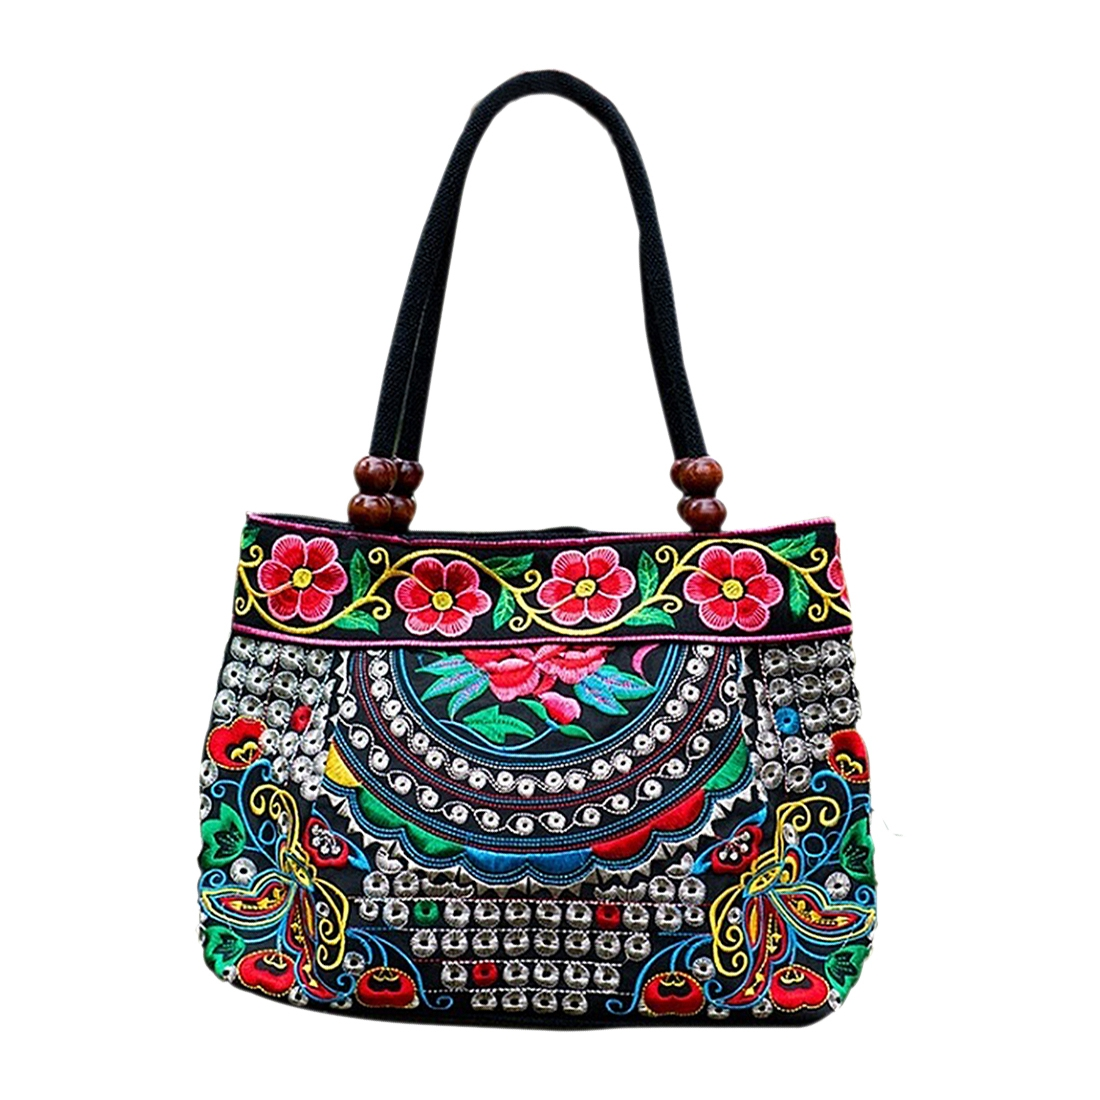 Chinese Style Women Handbag Embroidery Ethnic Summer Fashion Handmade Flowers Ladies Tote Shoulder Bags Cross-body  Butterfly national trend women handmade faced flower embroidered canvas embroidery ethnic bags handbag wml99